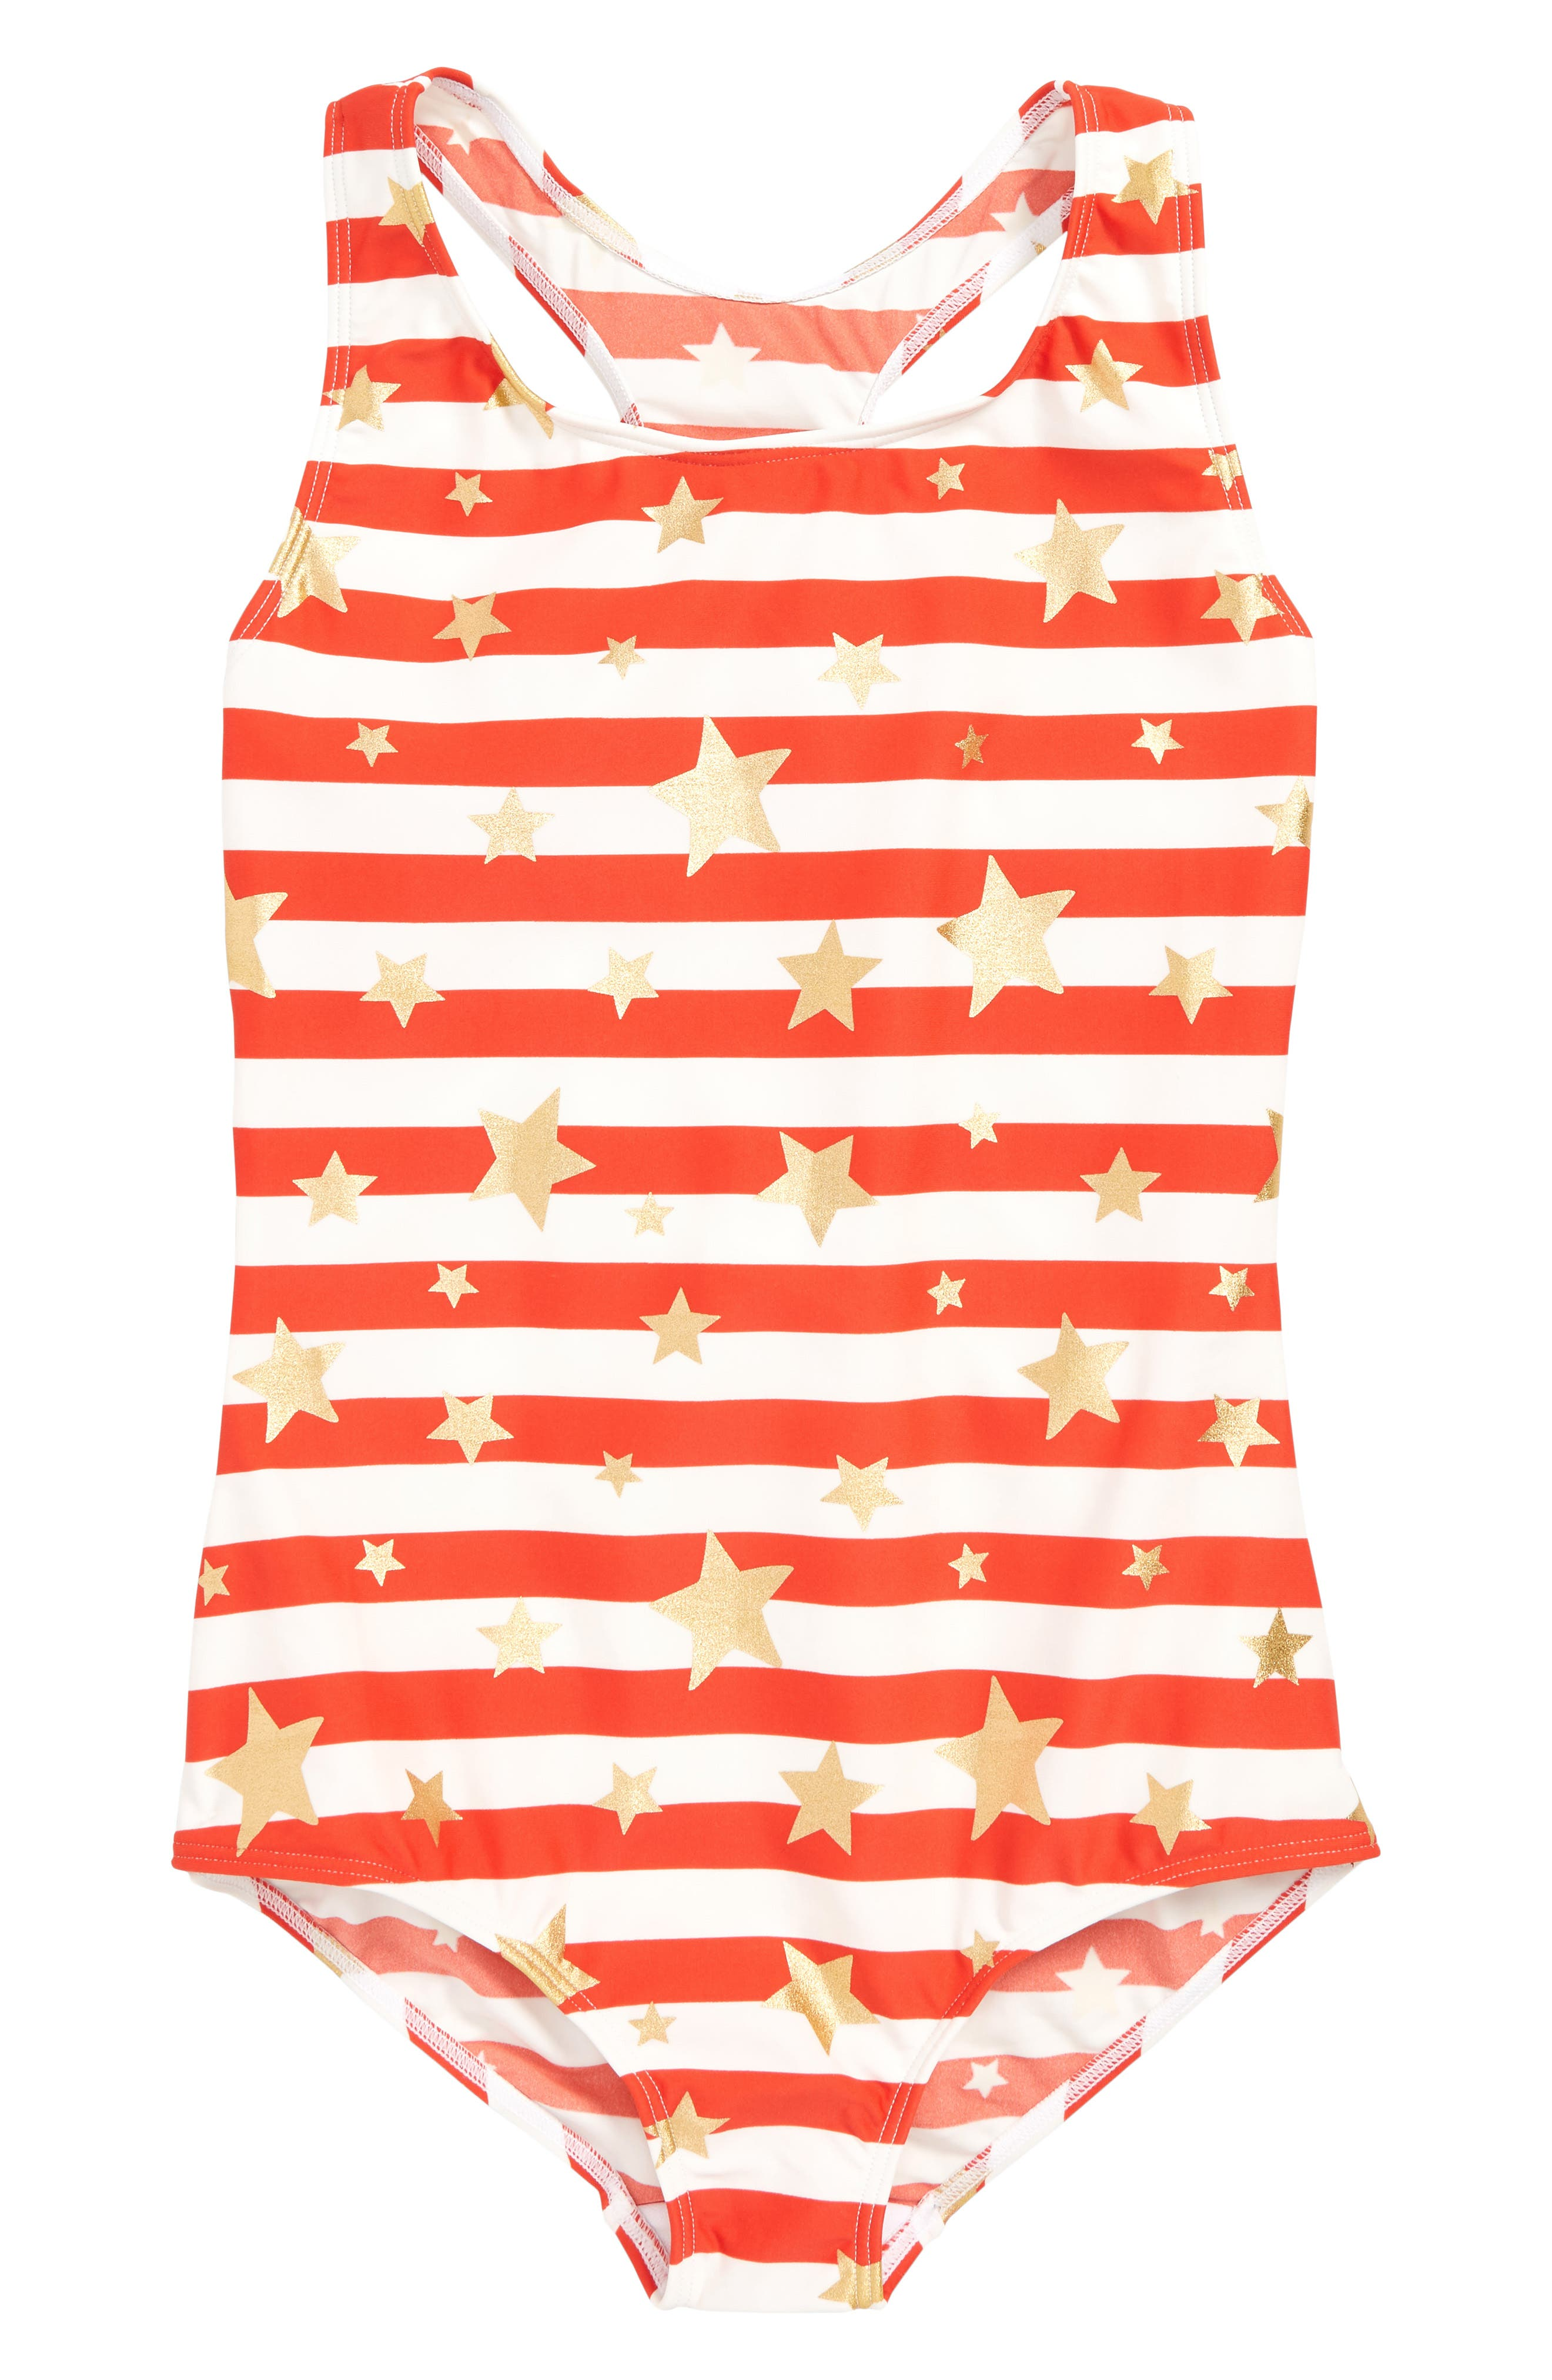 MINI BODEN Print One-Piece Swimsuit, Main, color, RED SUNSET GOLD HEART BRETON